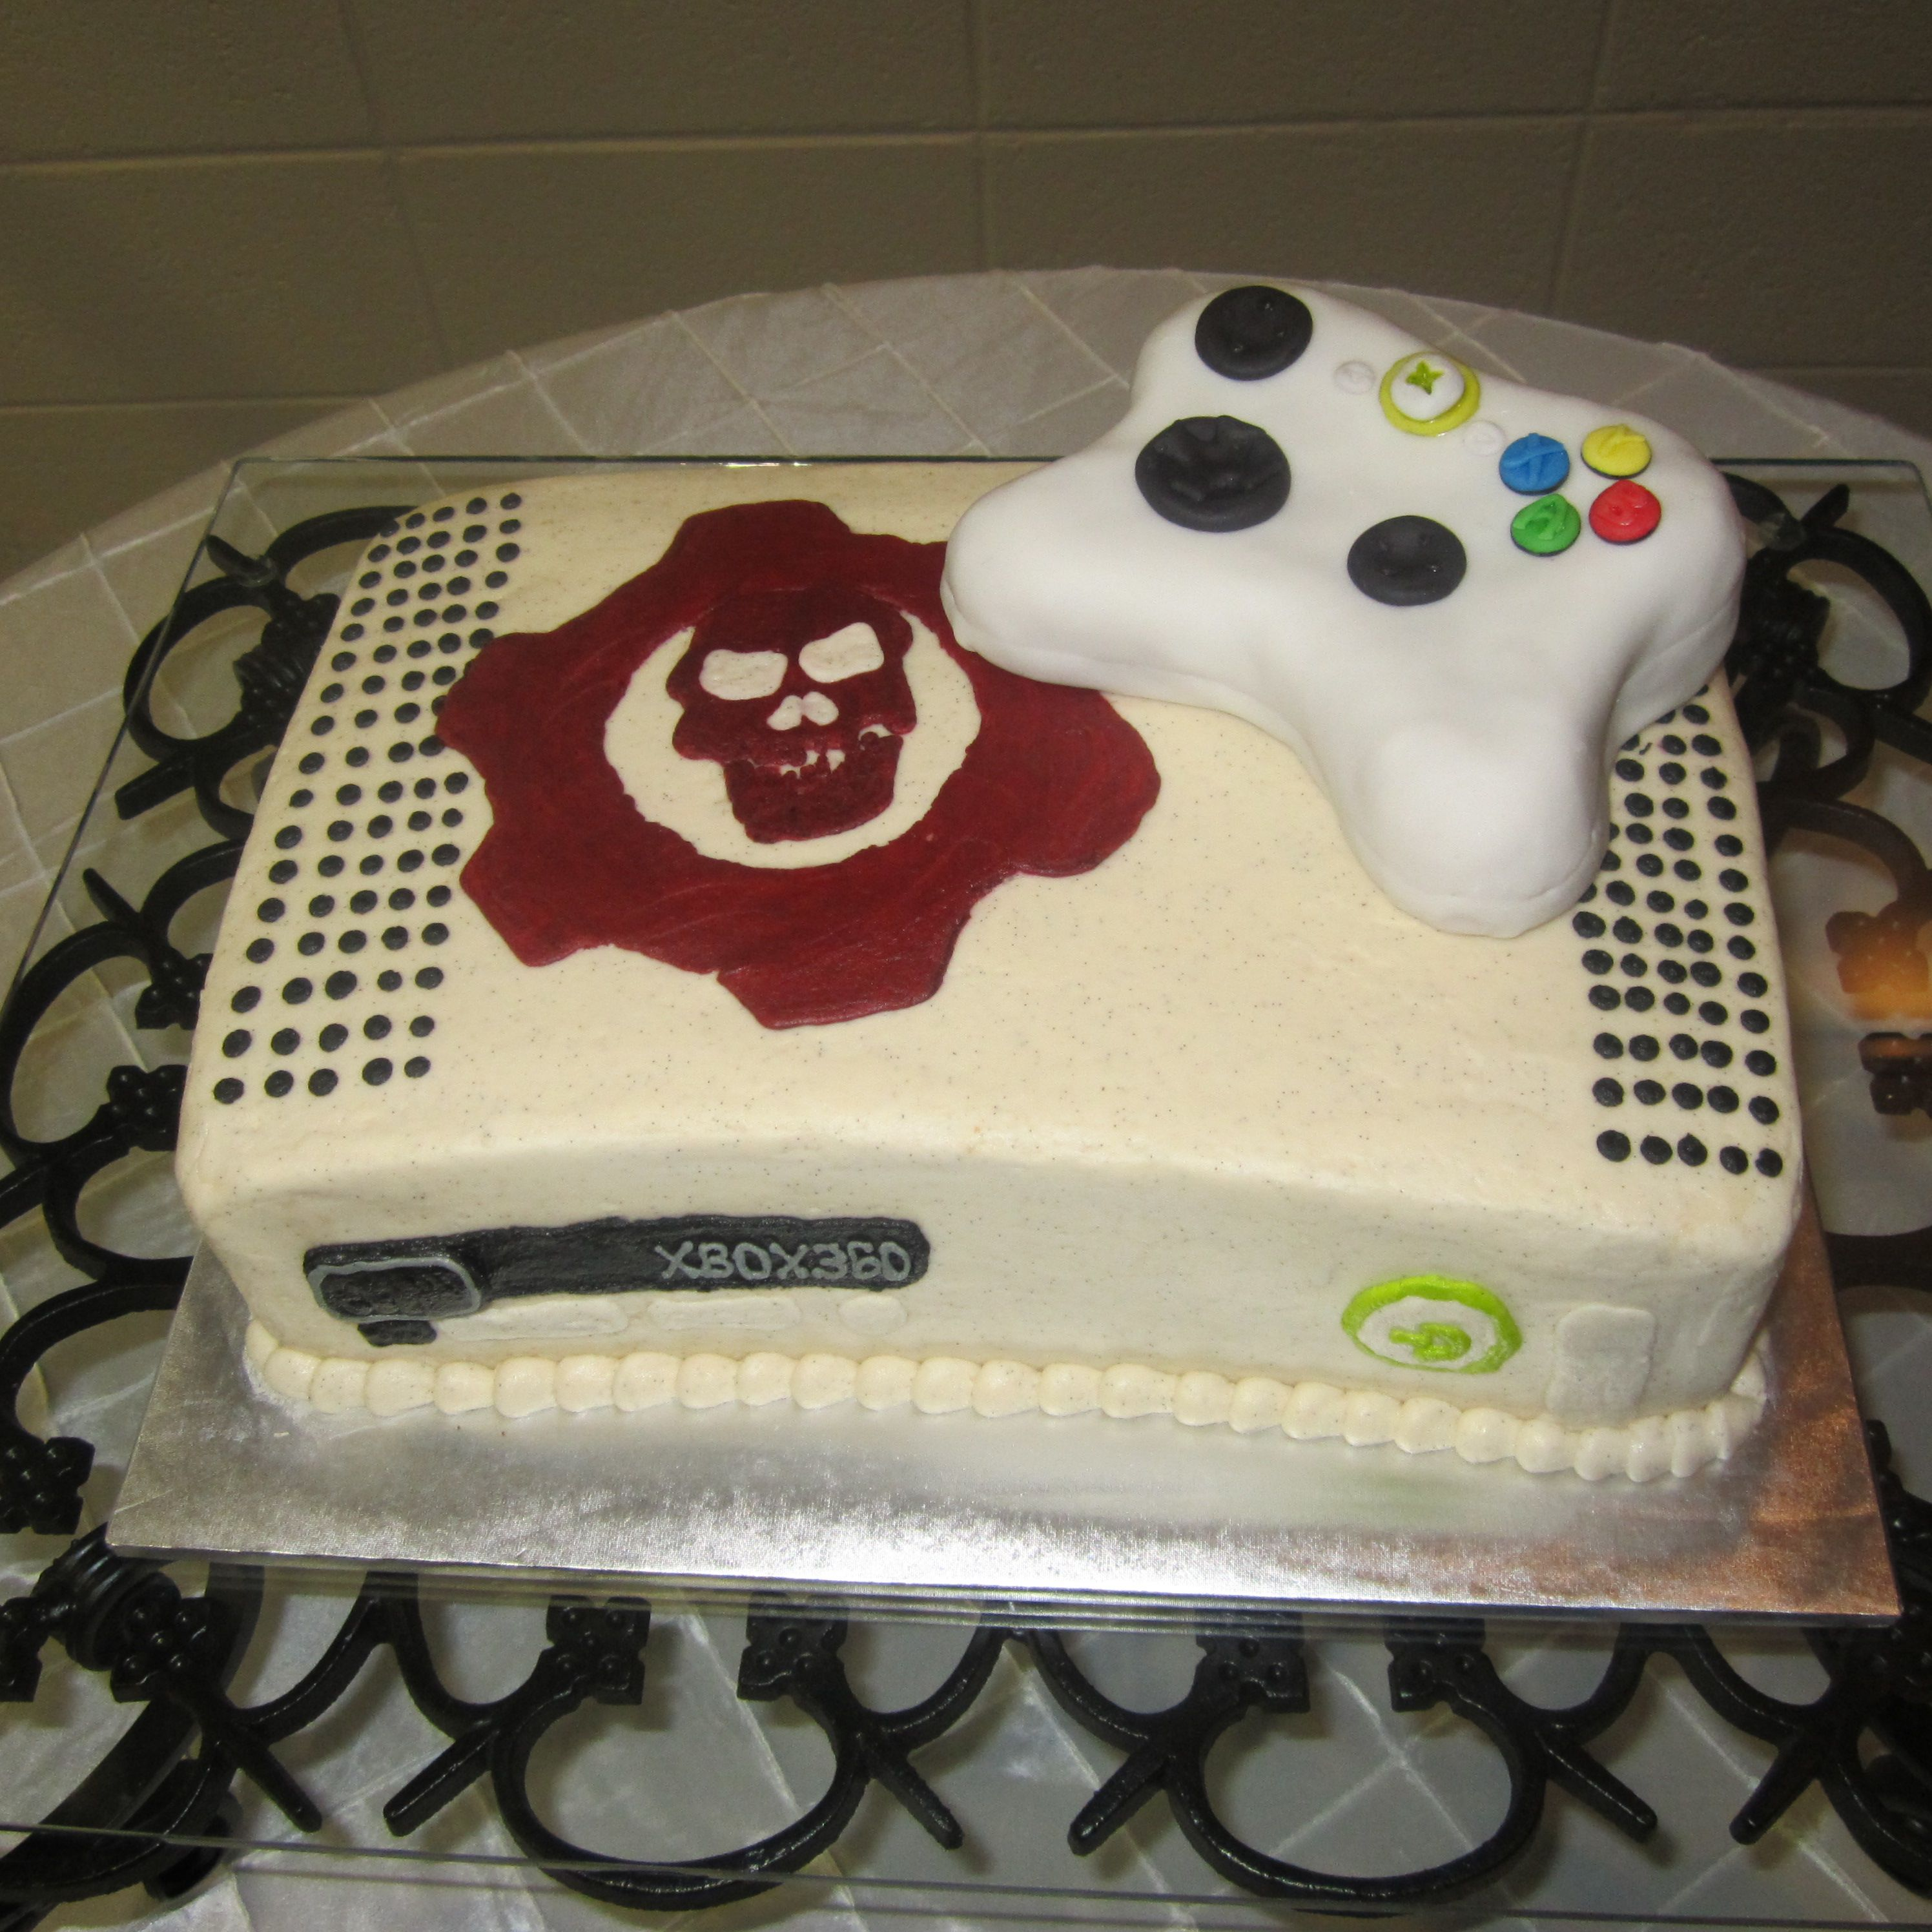 Gears Of War Xbox 360 Cake Tots Would Get For My Bday Girl Gamer